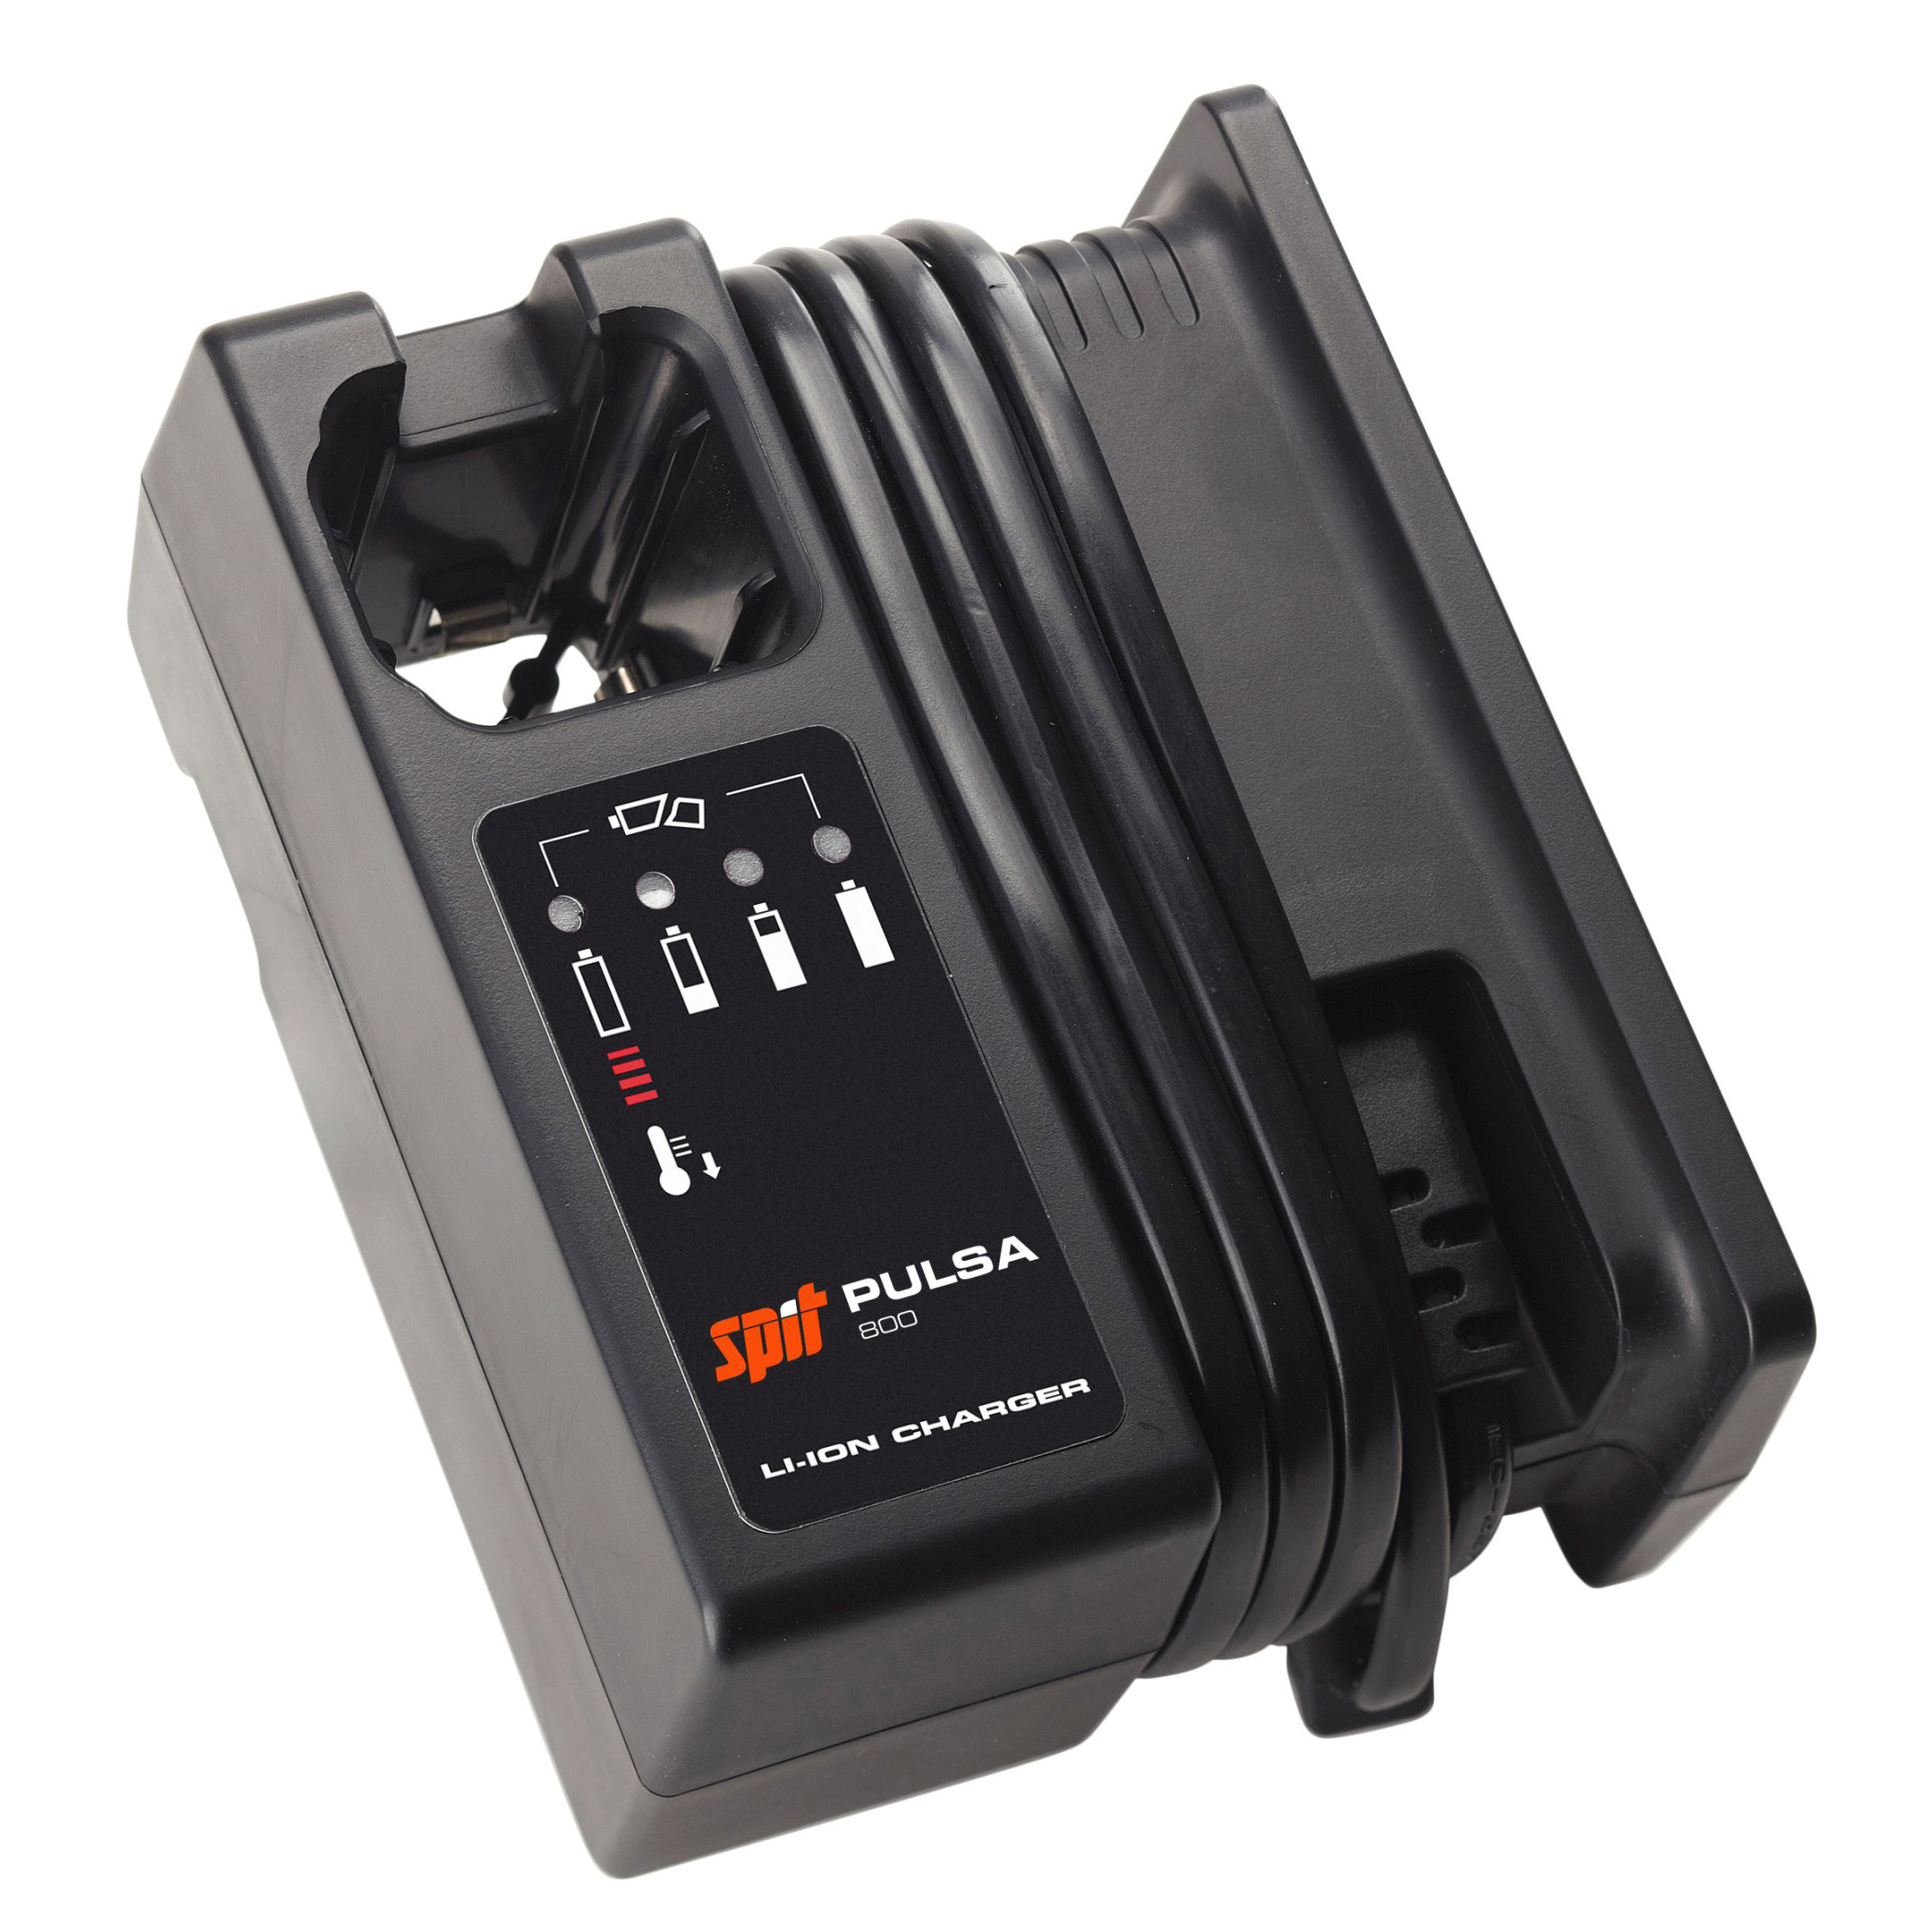 Battery Charger for Pulsa 800 (018484)